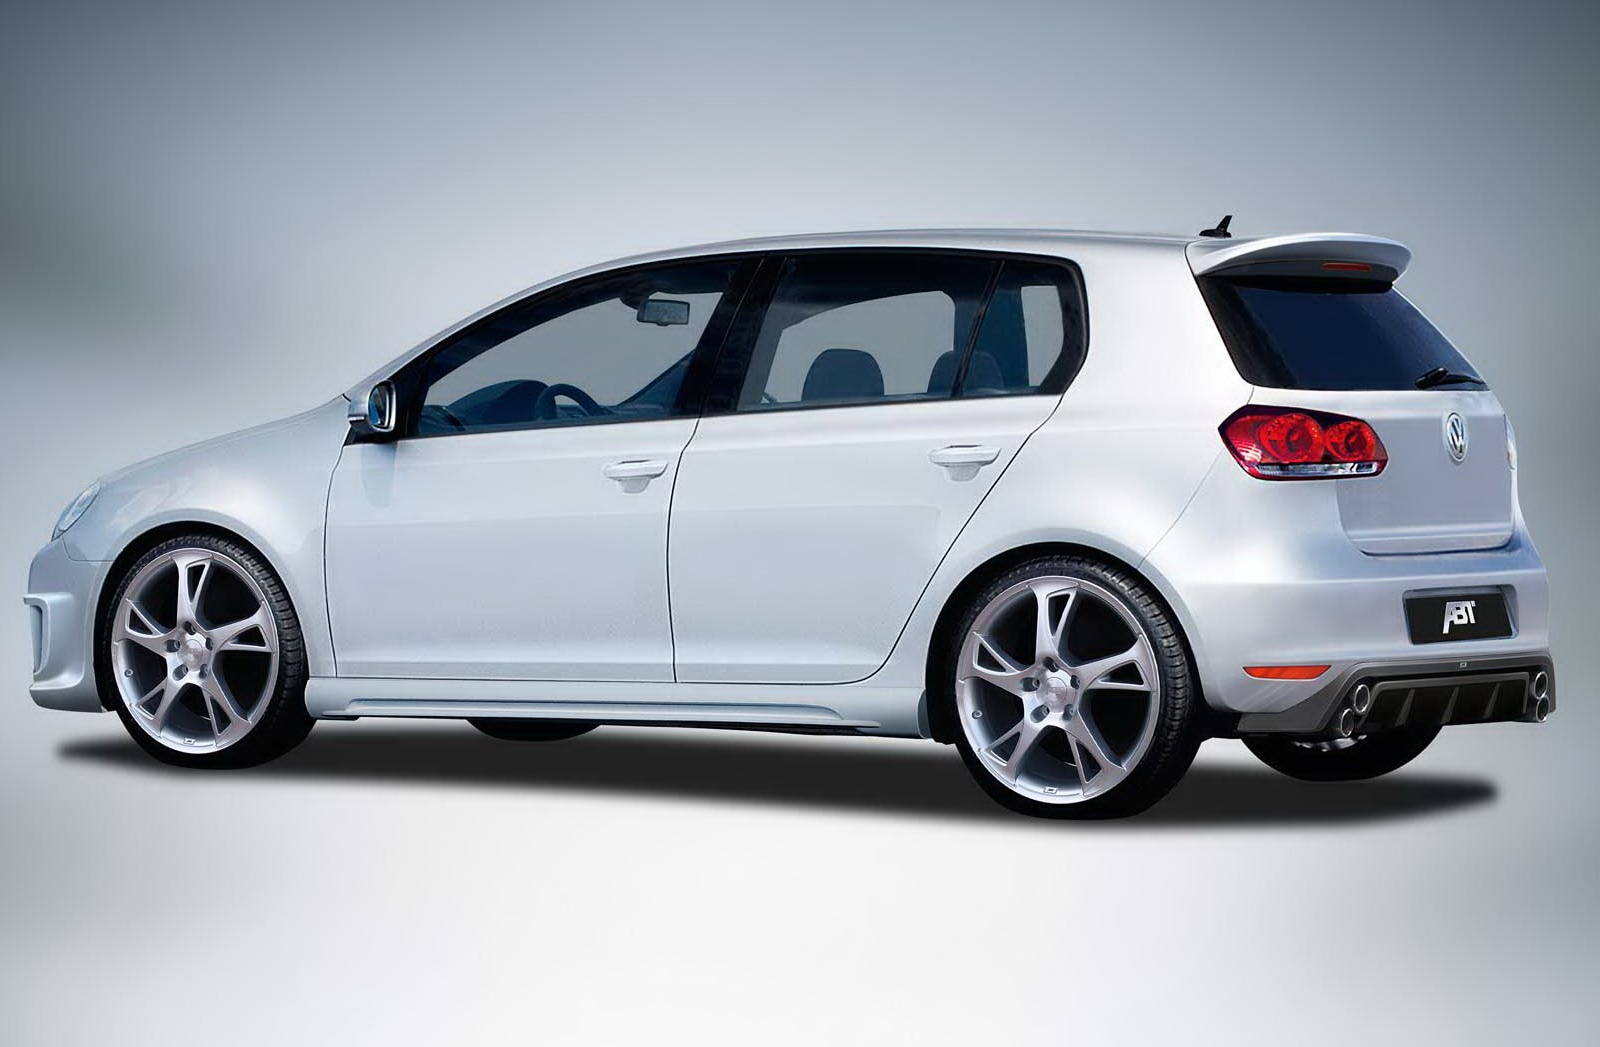 vw golf 6 by abt sportsline2 car news. Black Bedroom Furniture Sets. Home Design Ideas